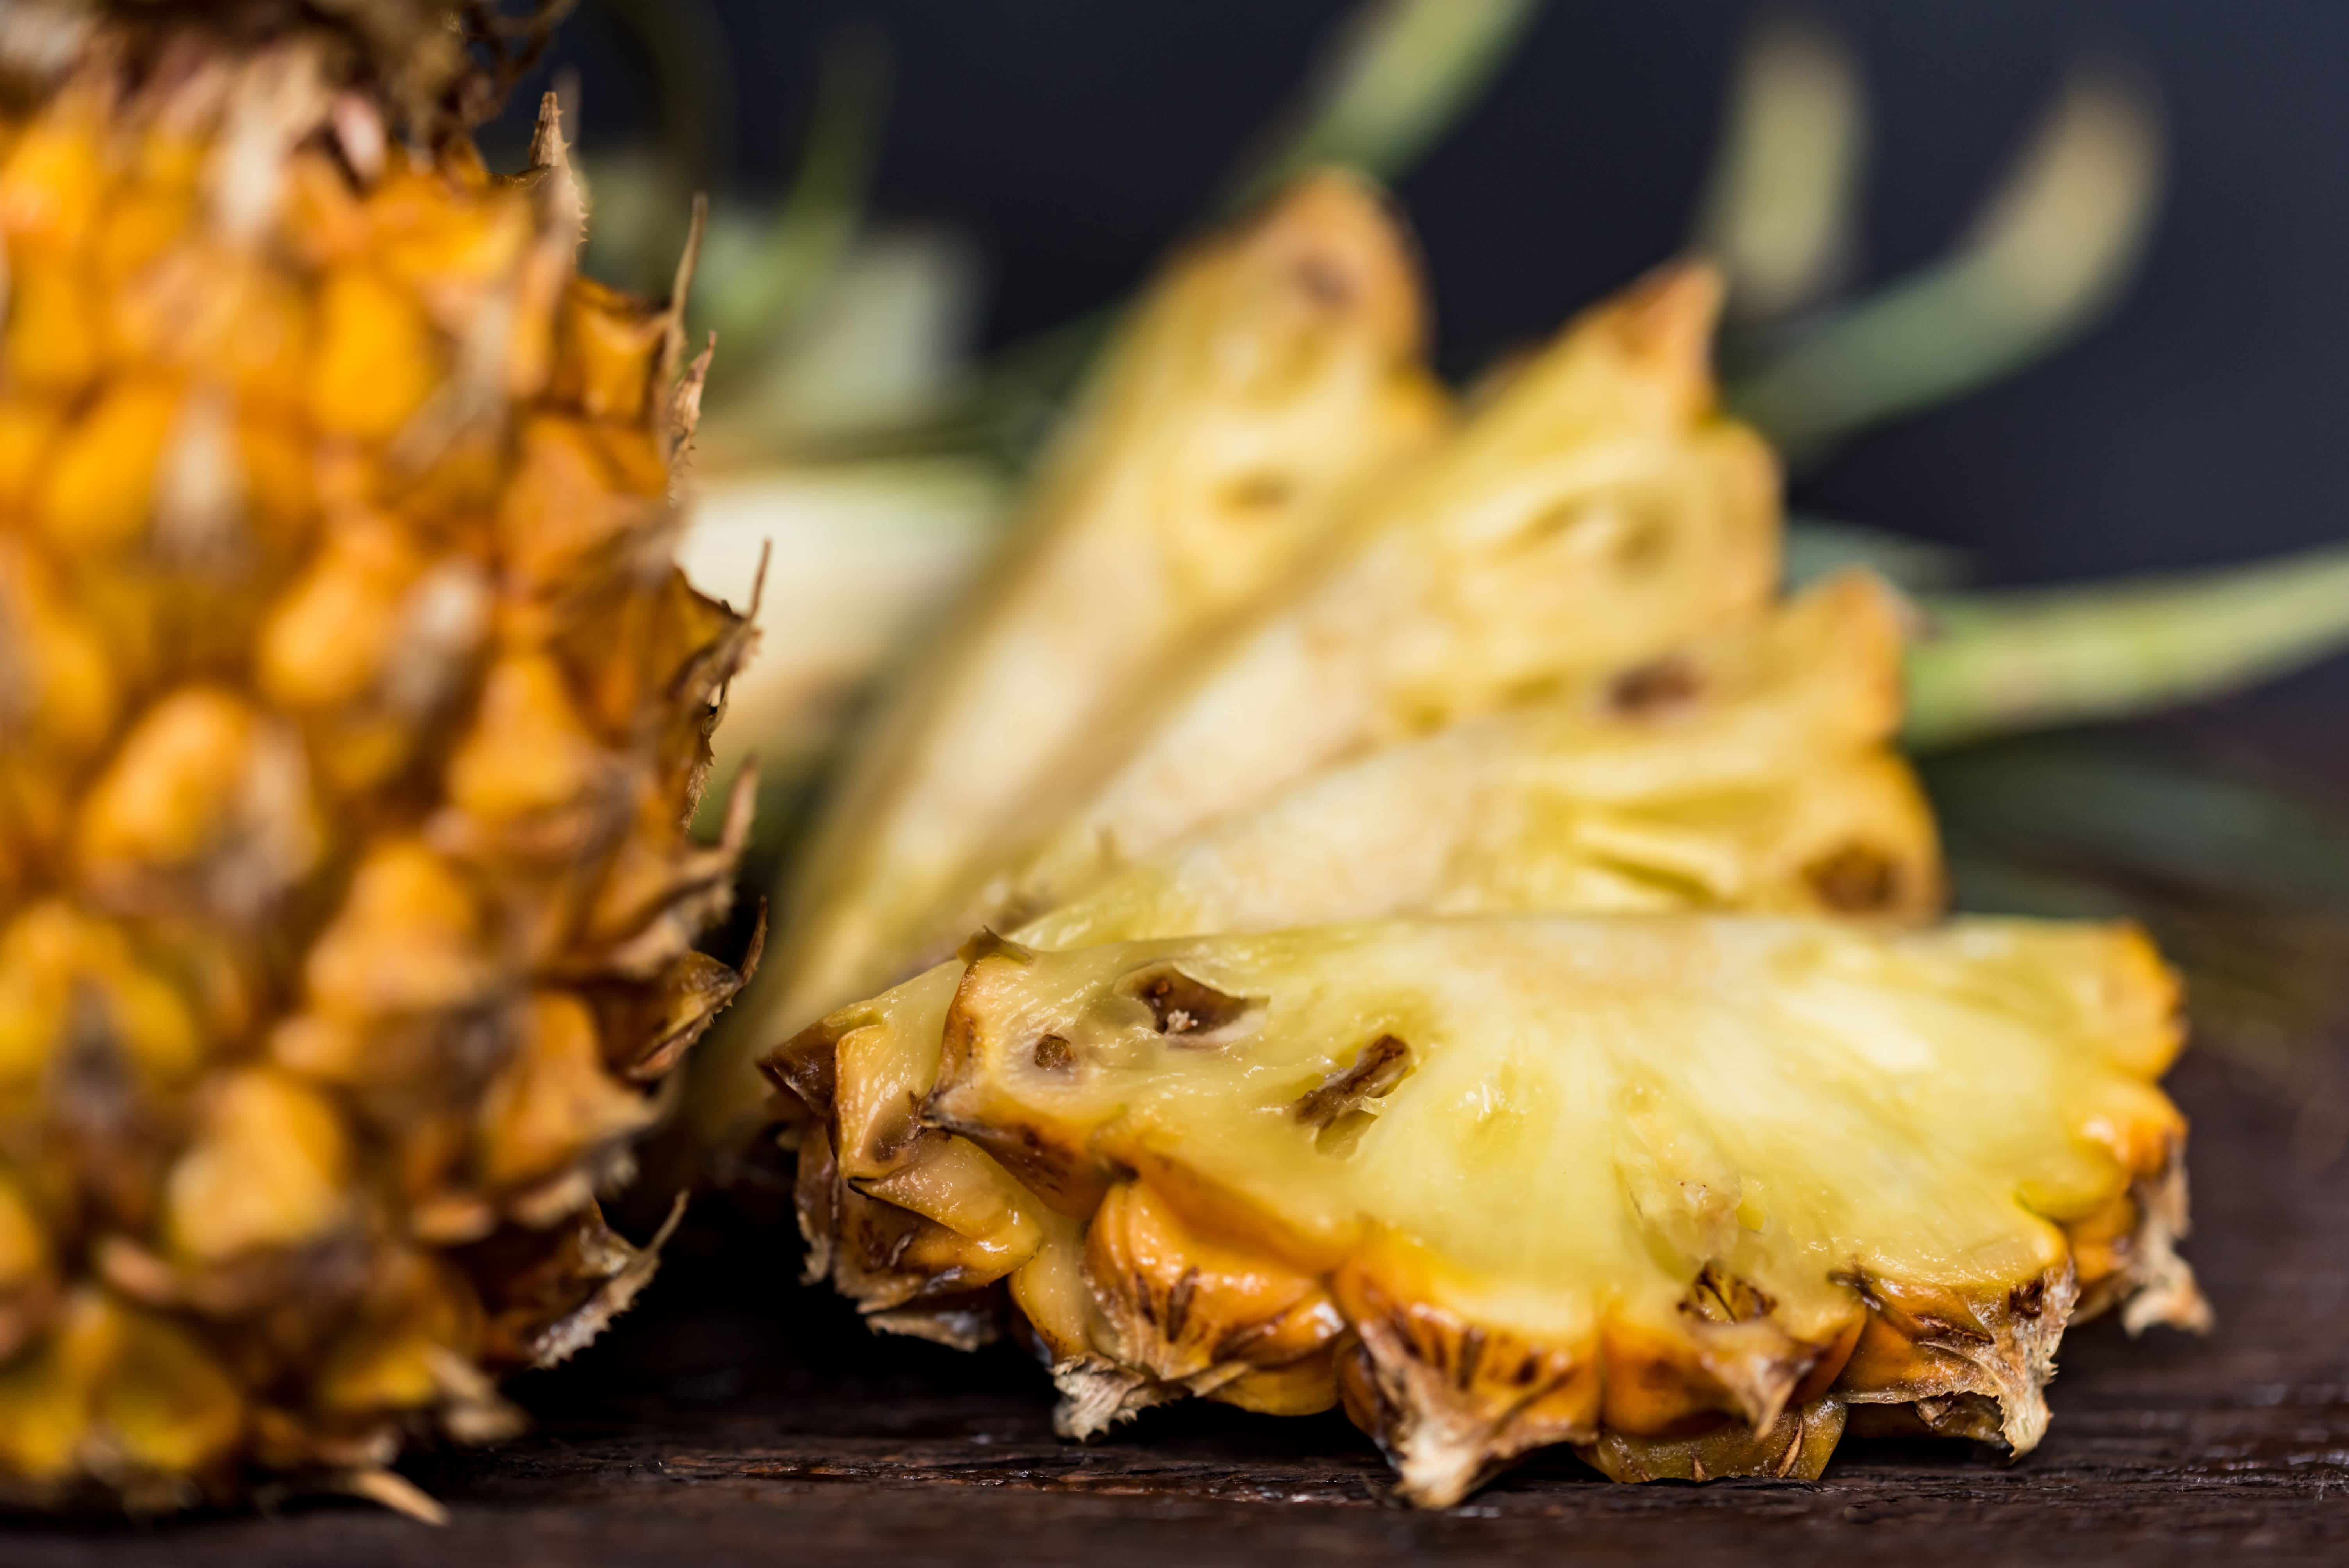 pineapples-on-a-dark-wooden-background-X4FHN6C-min